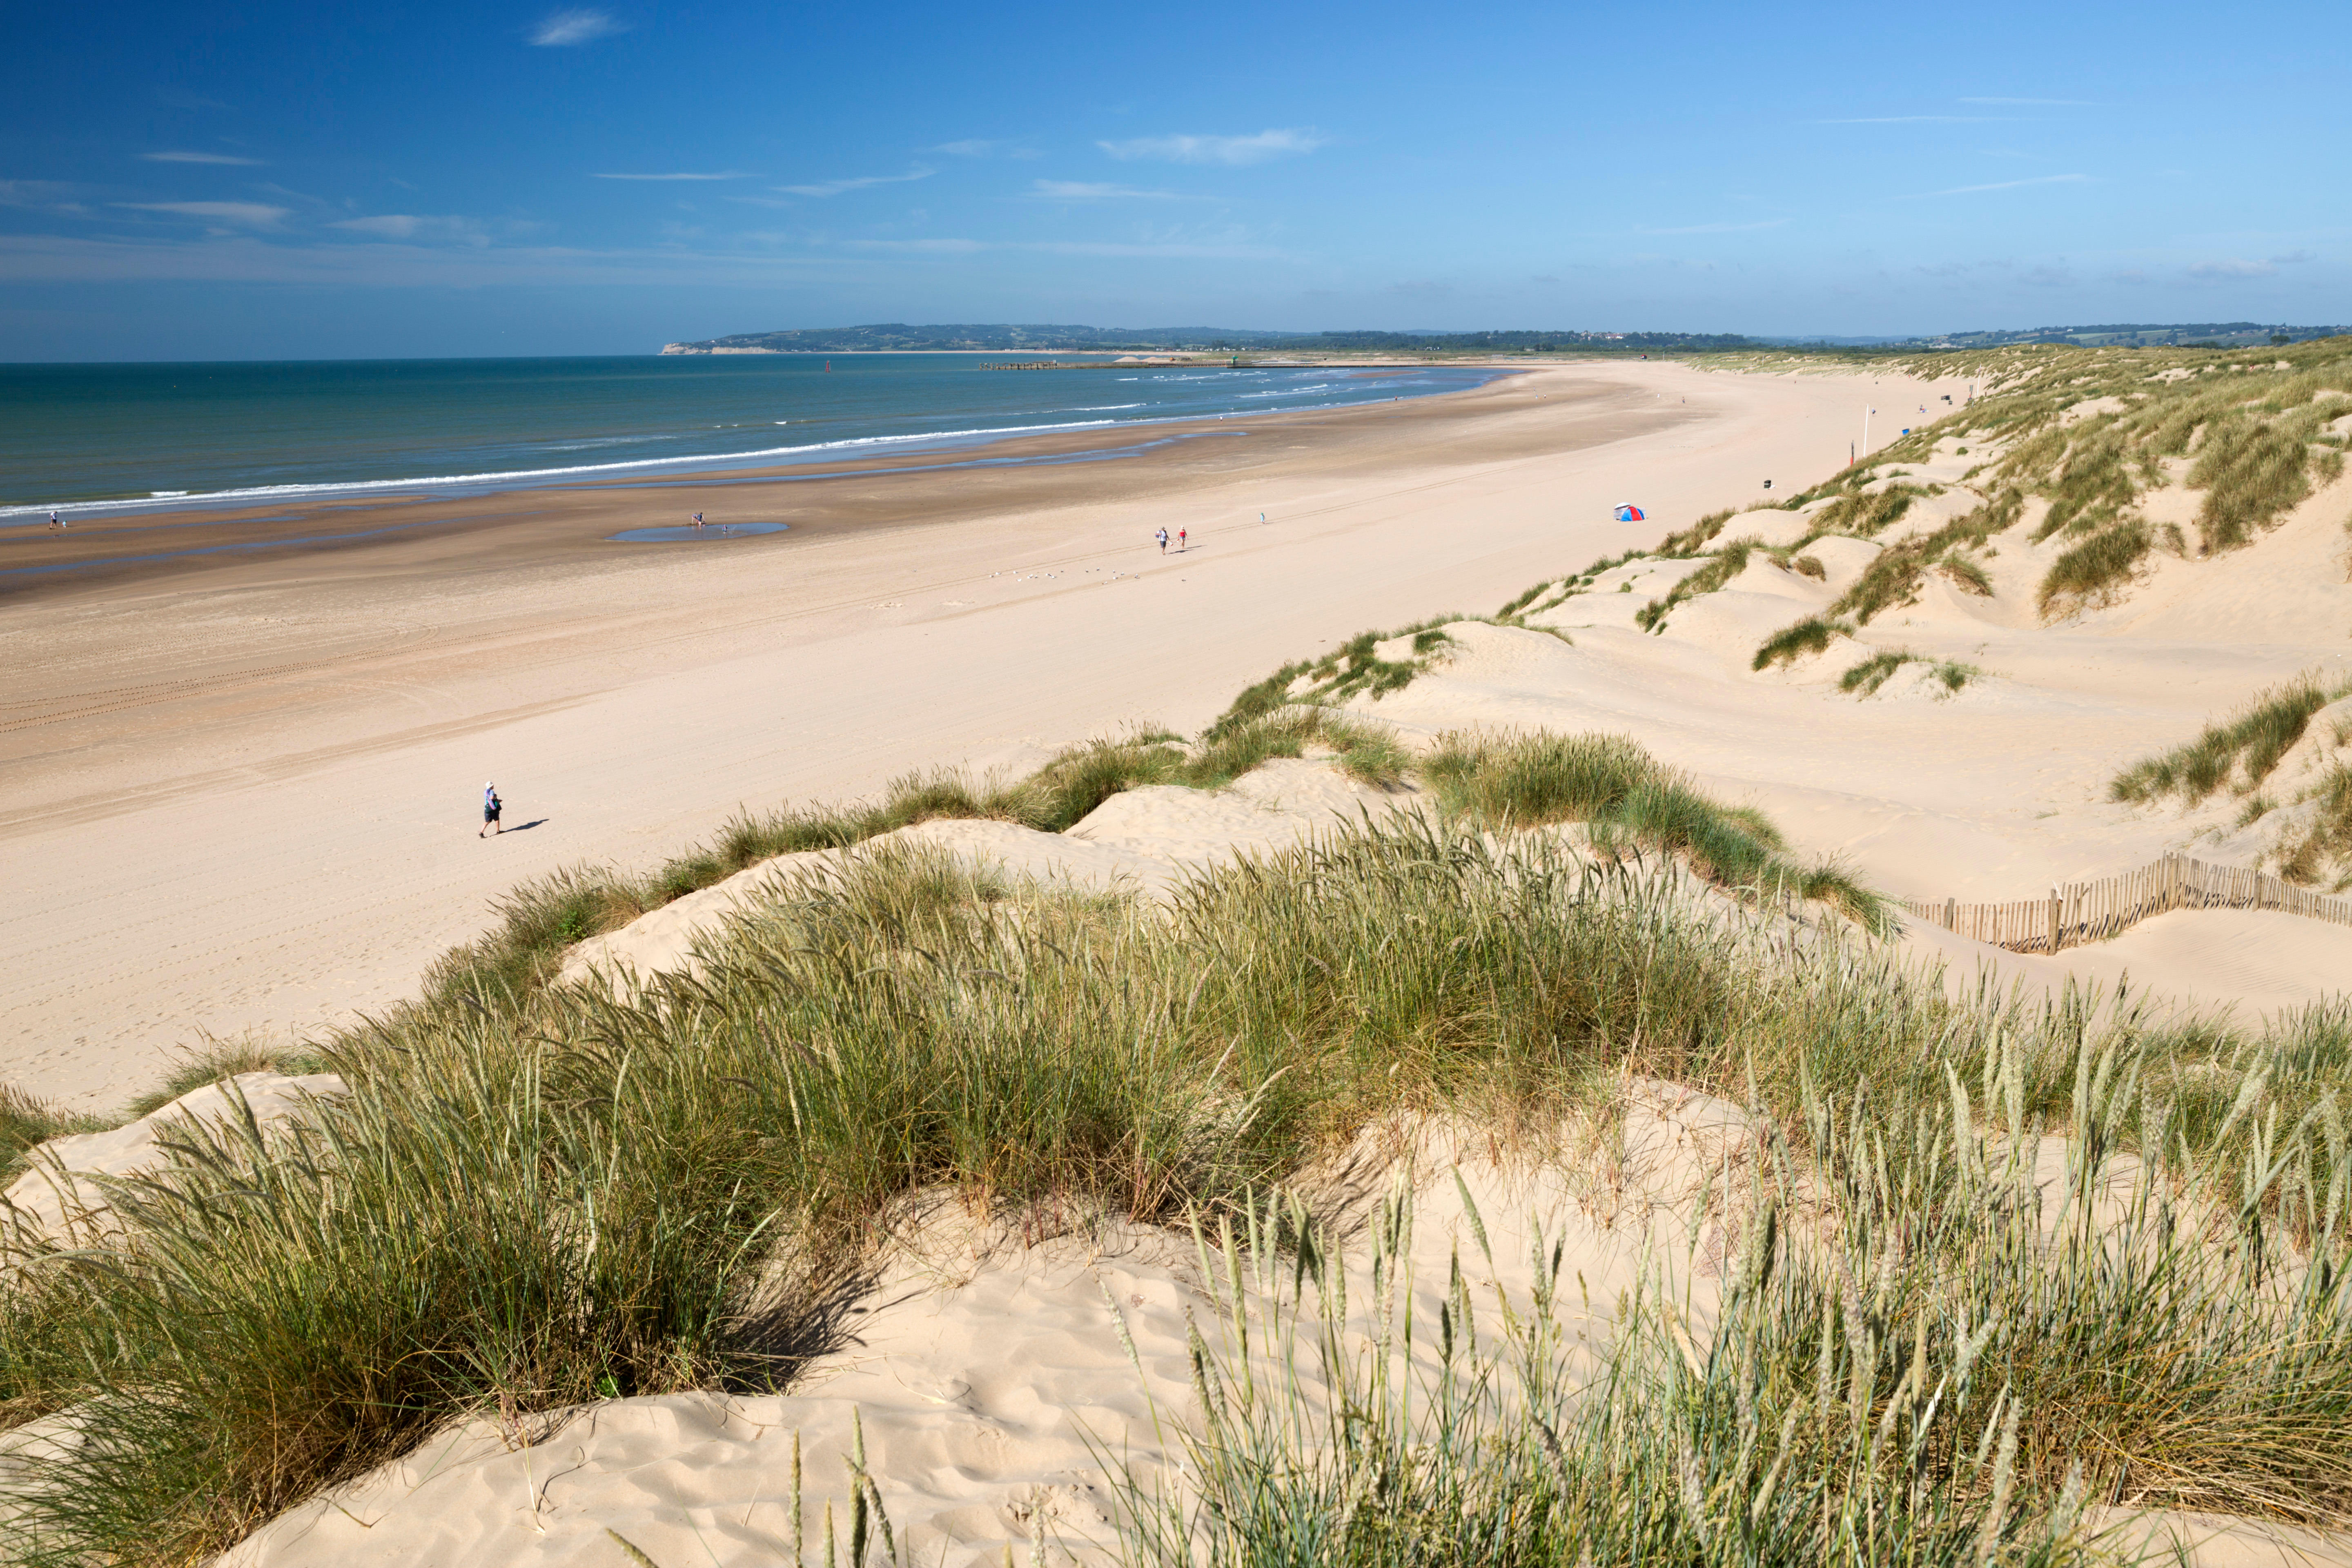 9 Of The Best Beaches Near London For A Sunny Day Trip London Evening Standard